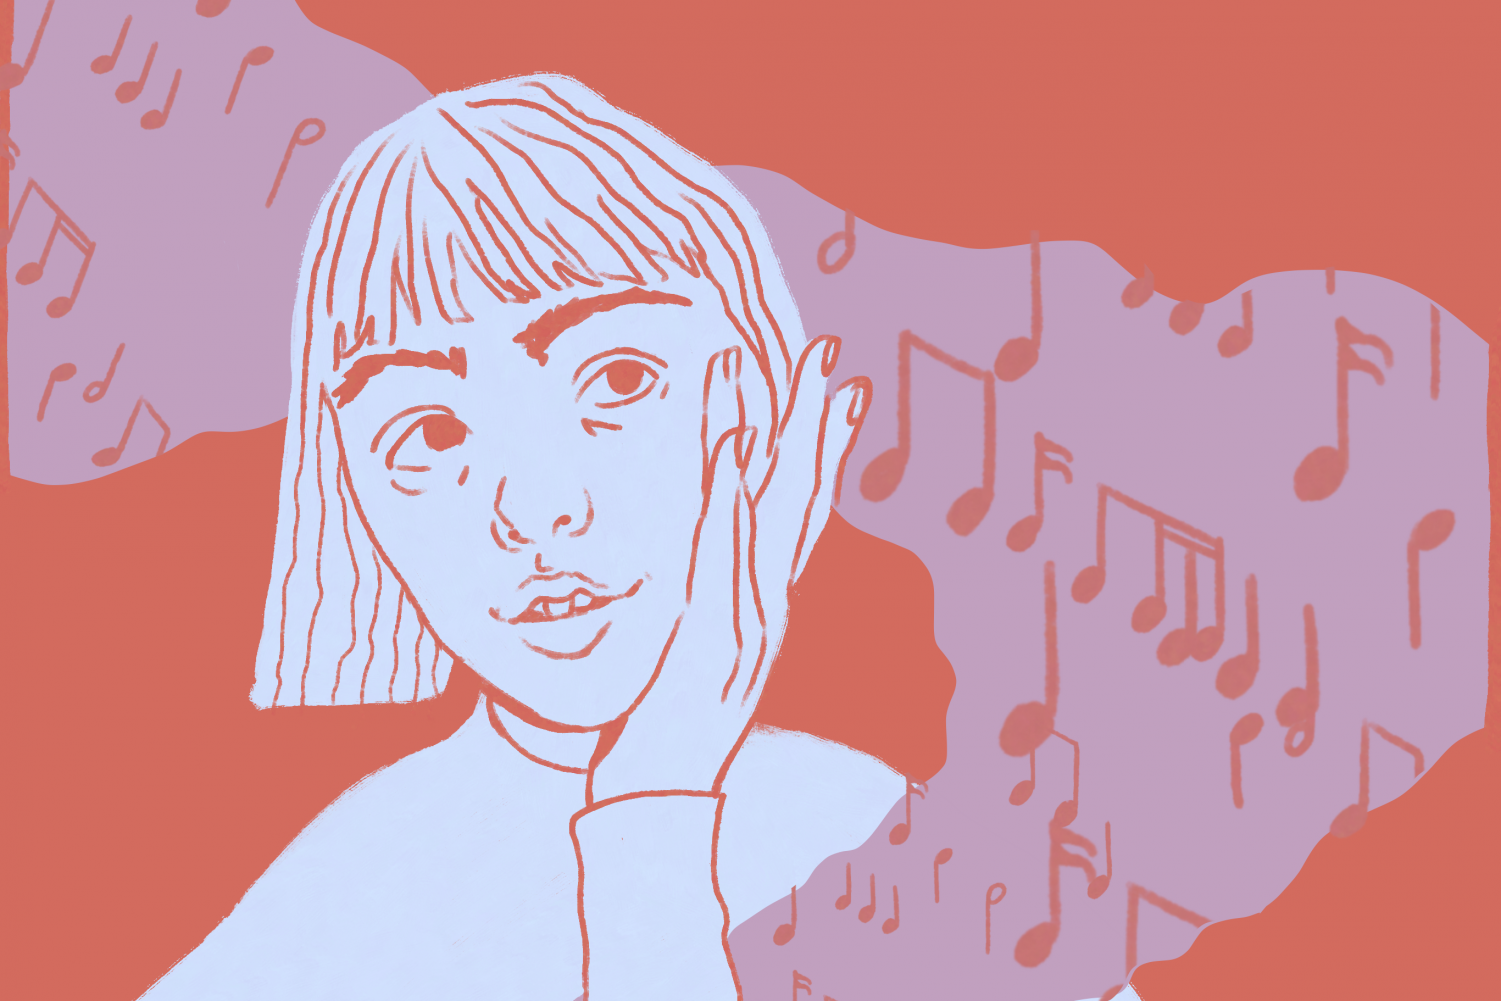 A girl is surrounded by musical notes.